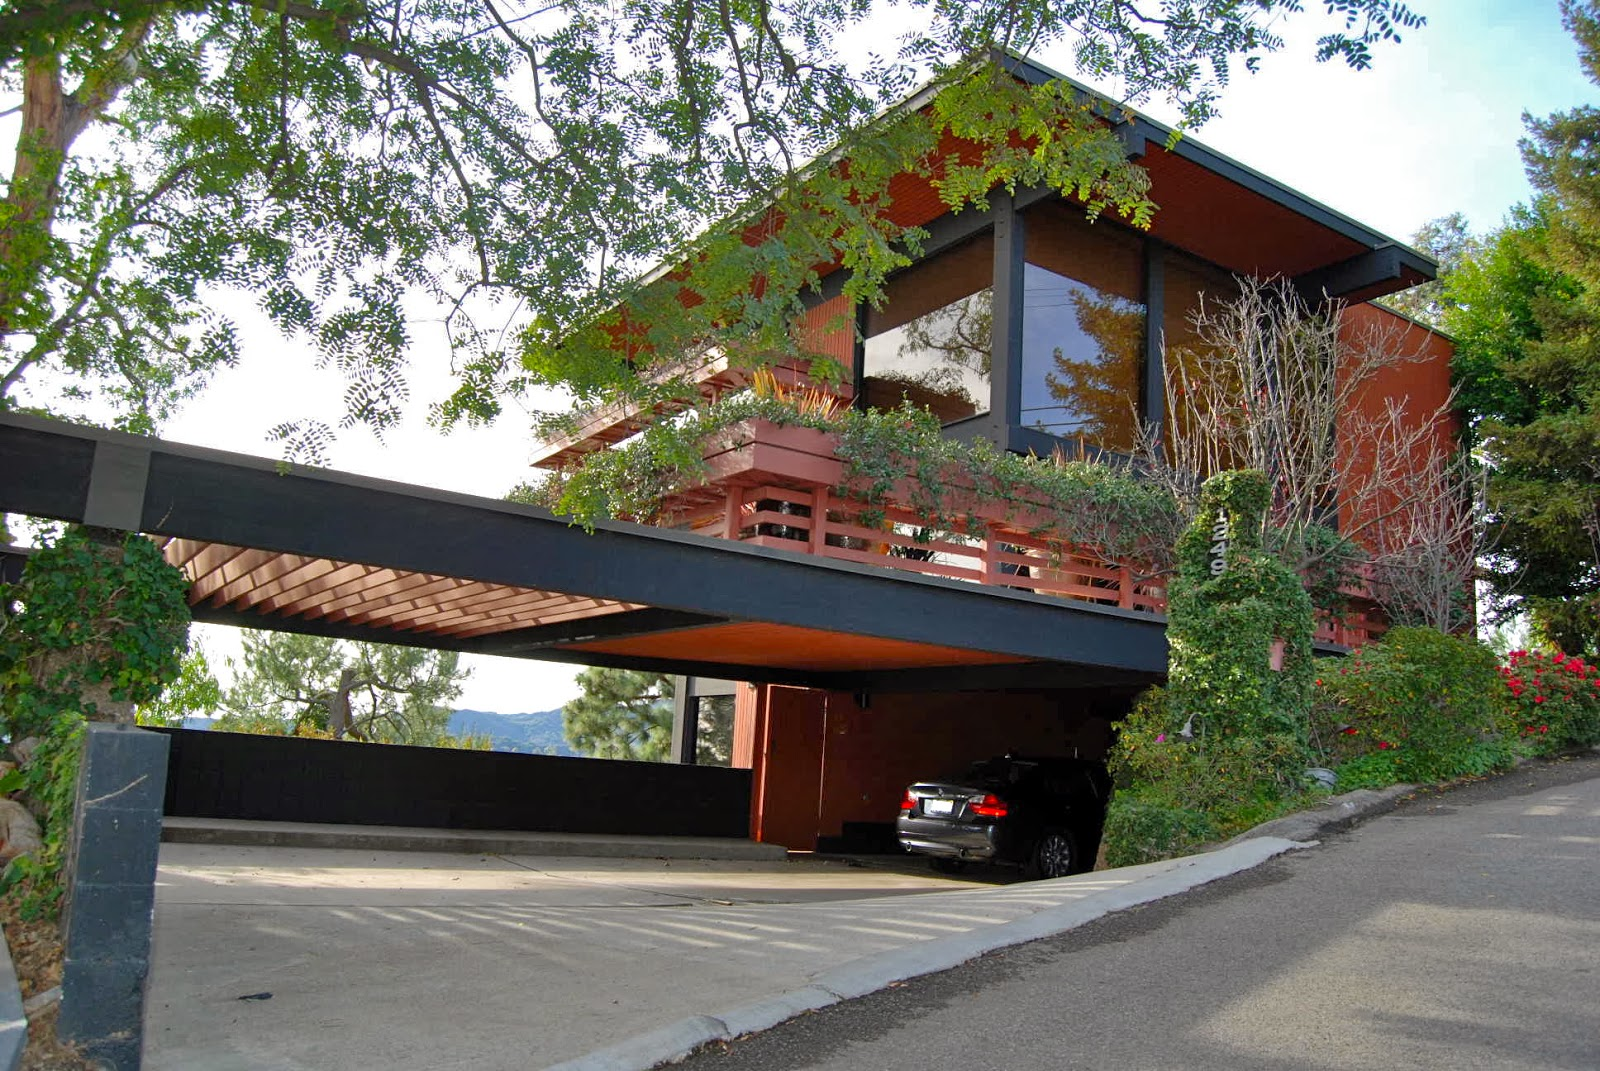 Modern Homes With Carport : Excellent house in the world modern homes losangeles